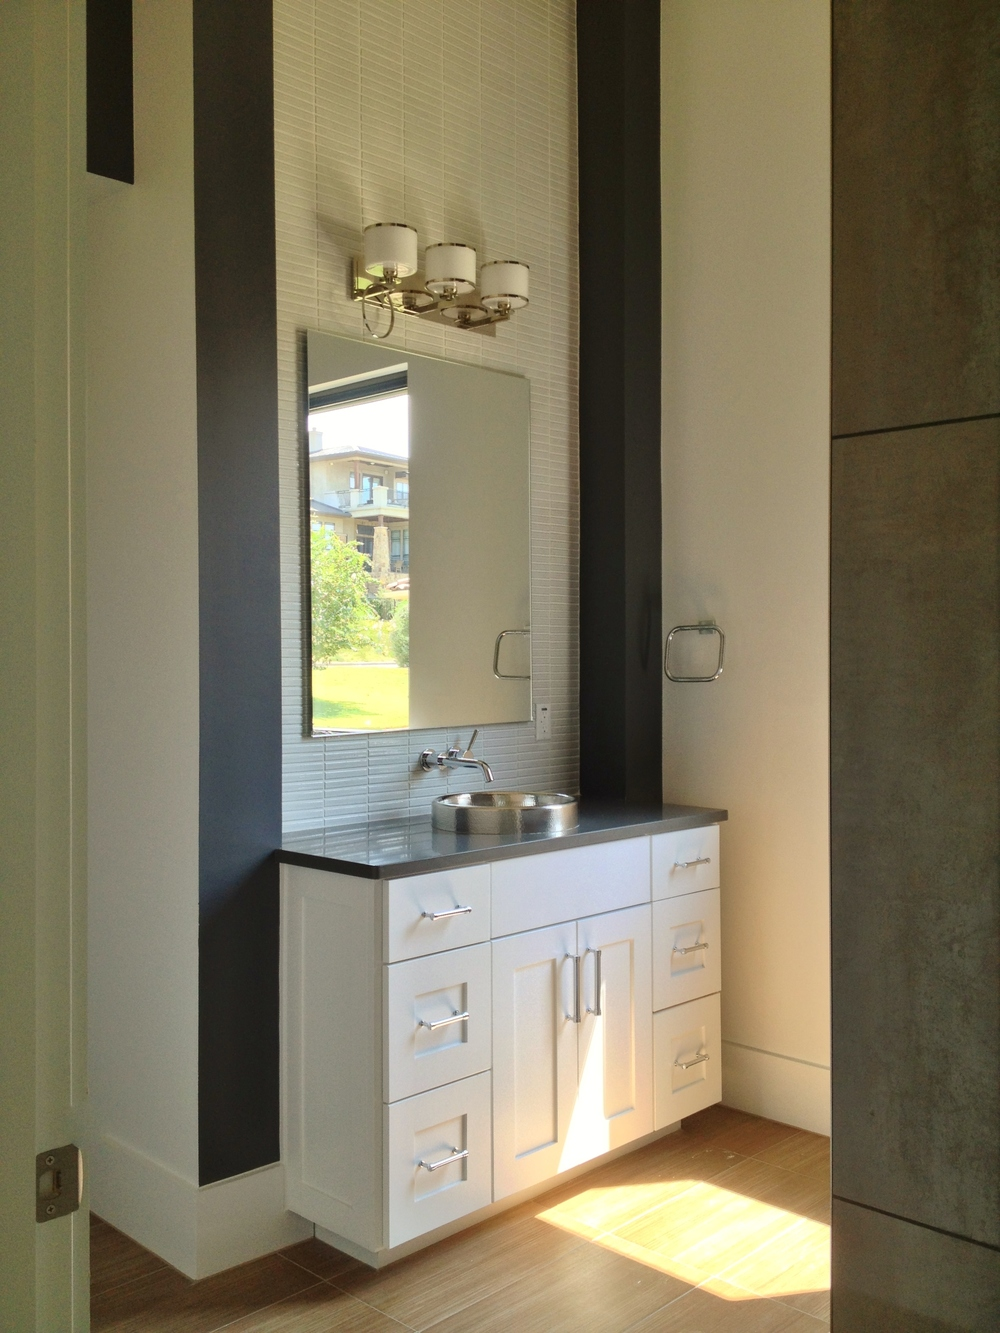 contemporary vanity tile backsplash.jpg